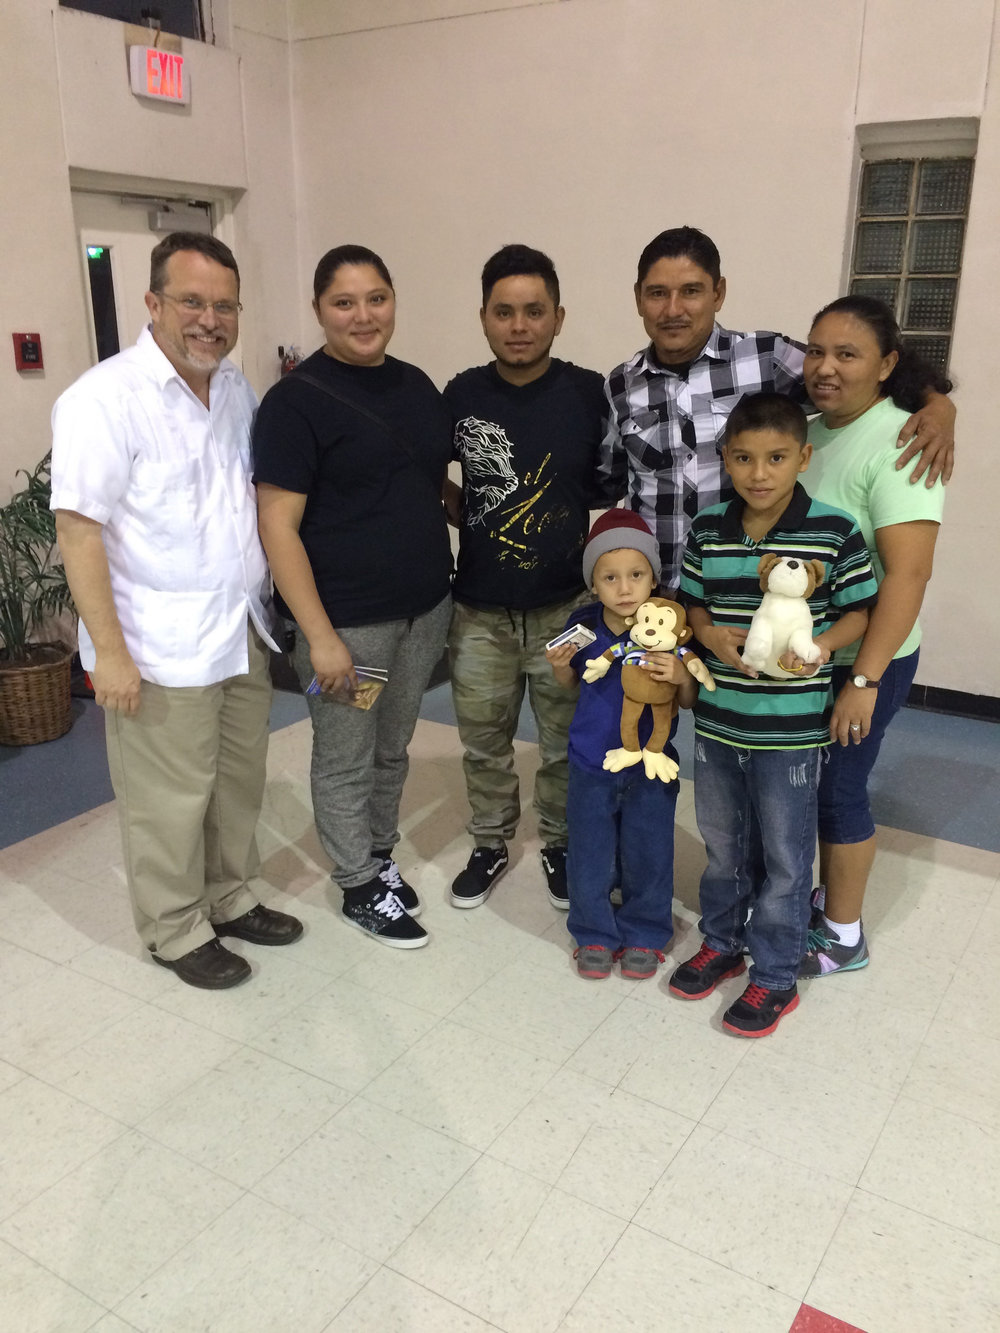 The Rev. John Feagins (far left) with a woman and her two young sons who were reunited with her husband and other children at La Trinidad United Methodist Church in San Antonio, Texas. Photo: Courtesy John Feagins